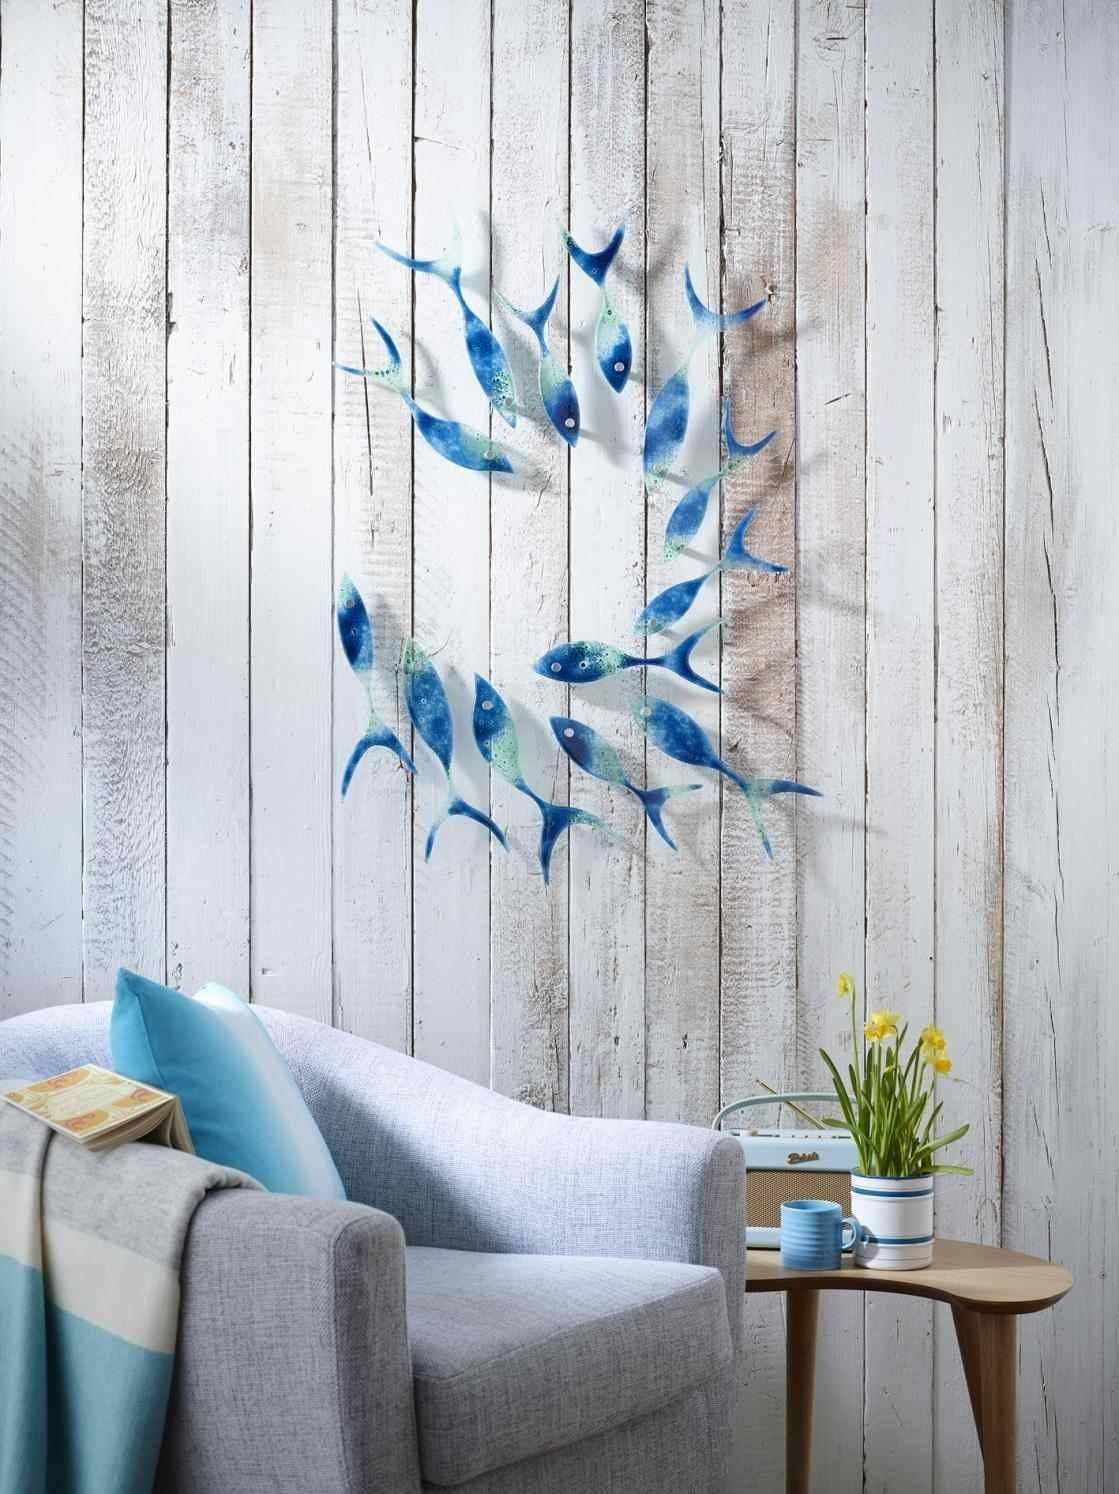 Metal Wall Art Fish Shoal | Home Interior Decor Throughout Most Popular Fish Shoal Metal Wall Art (View 11 of 30)